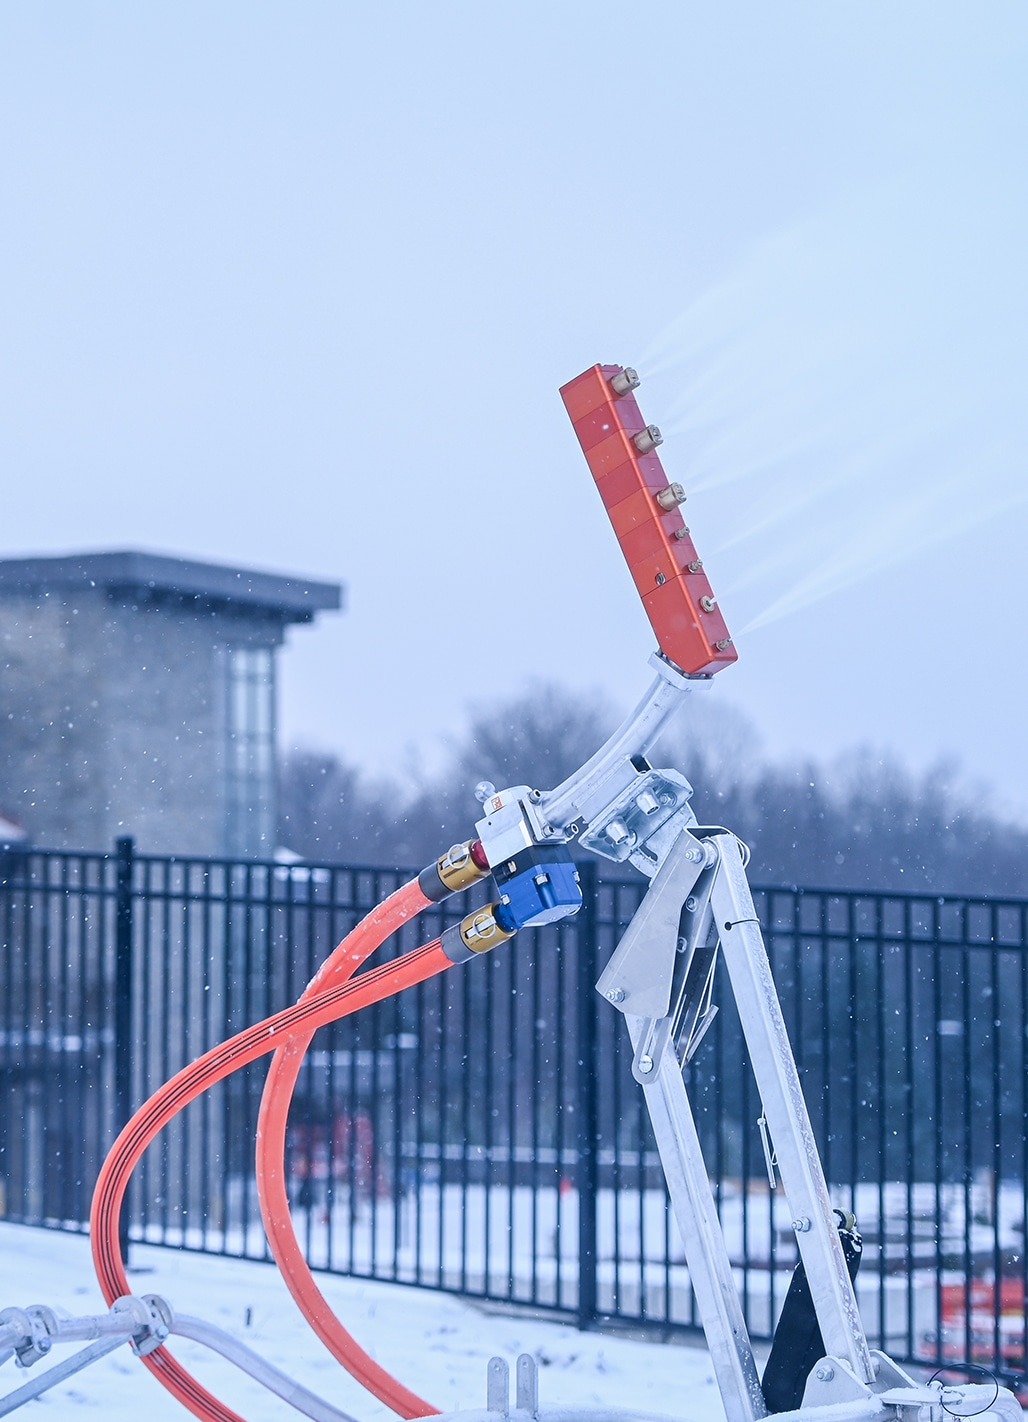 A snow making machine shoots snow at one of the venues for the Games